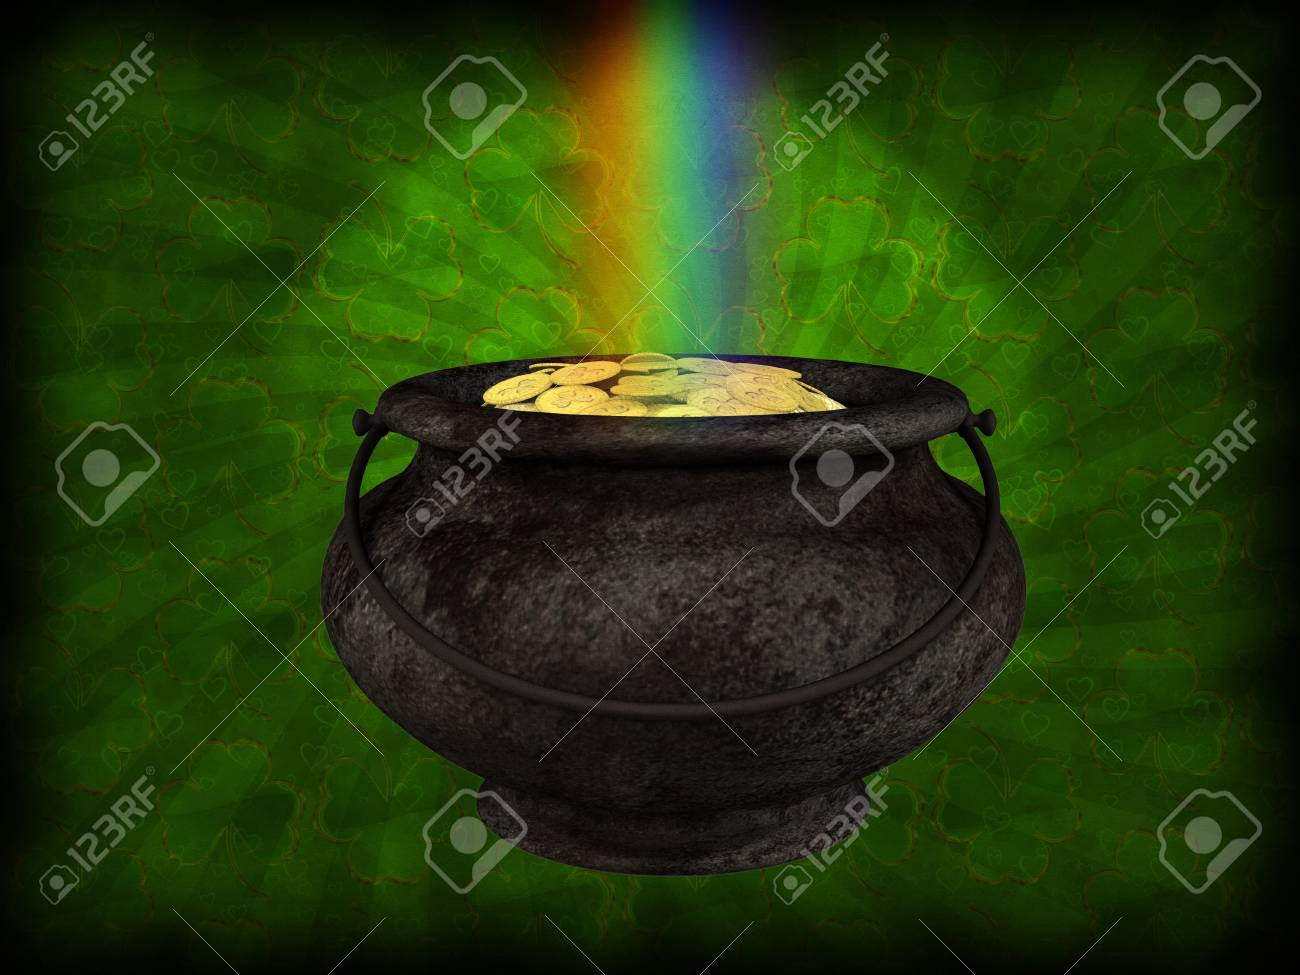 Illustration of old big pot with golden coins background. Stock Photo - 16954039